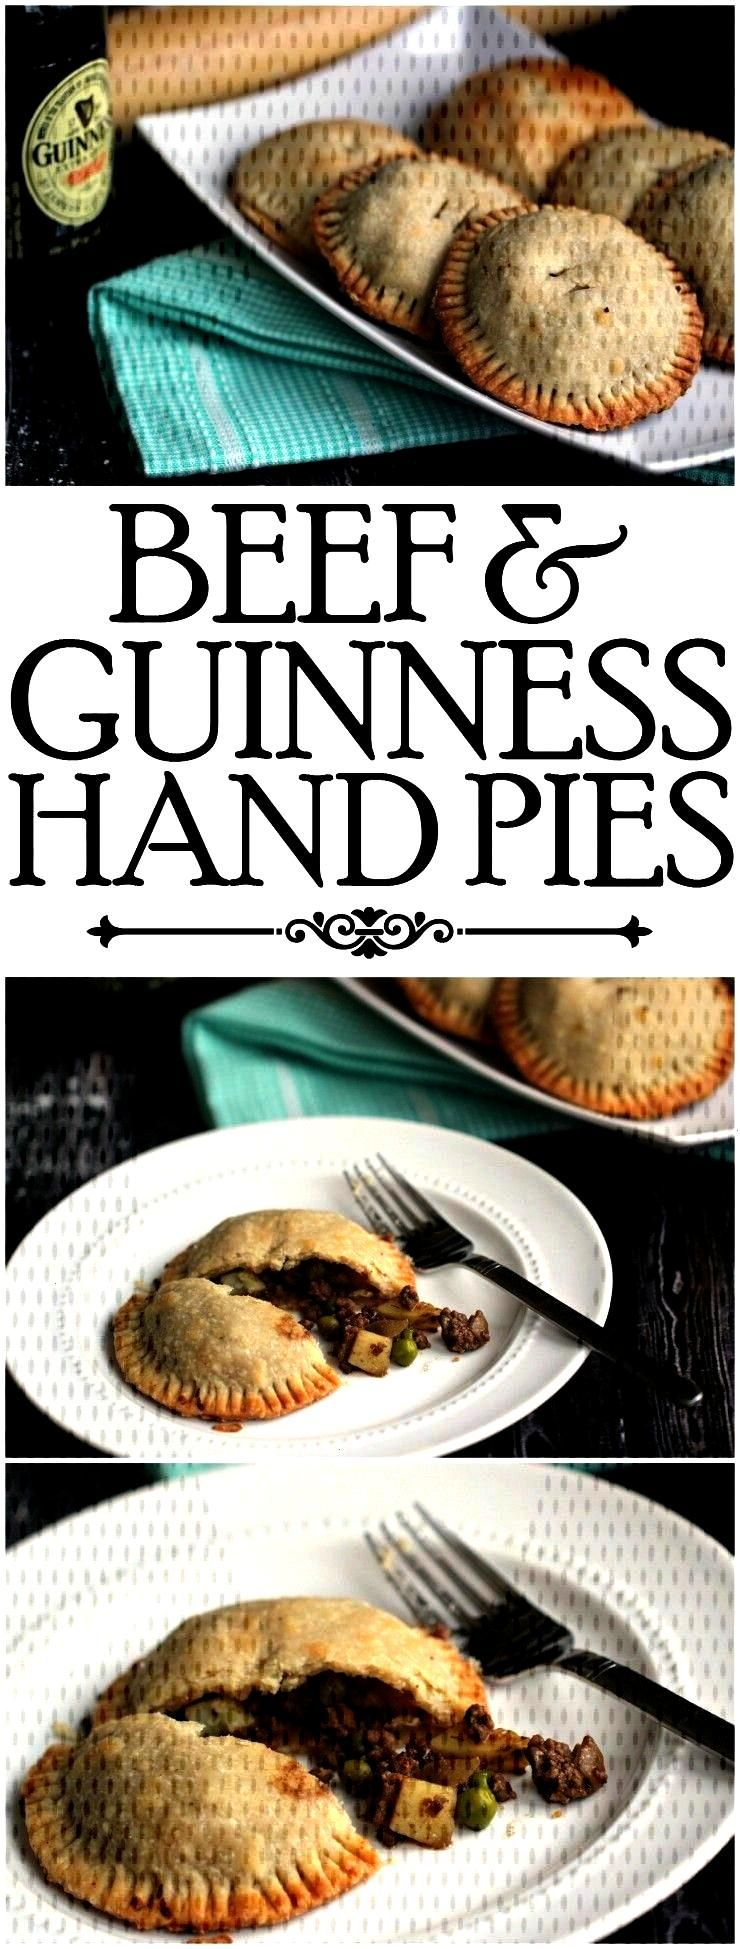 and Guinness Hand Pies are a great St. Patricks Day Recipe your family will love eating for dinner